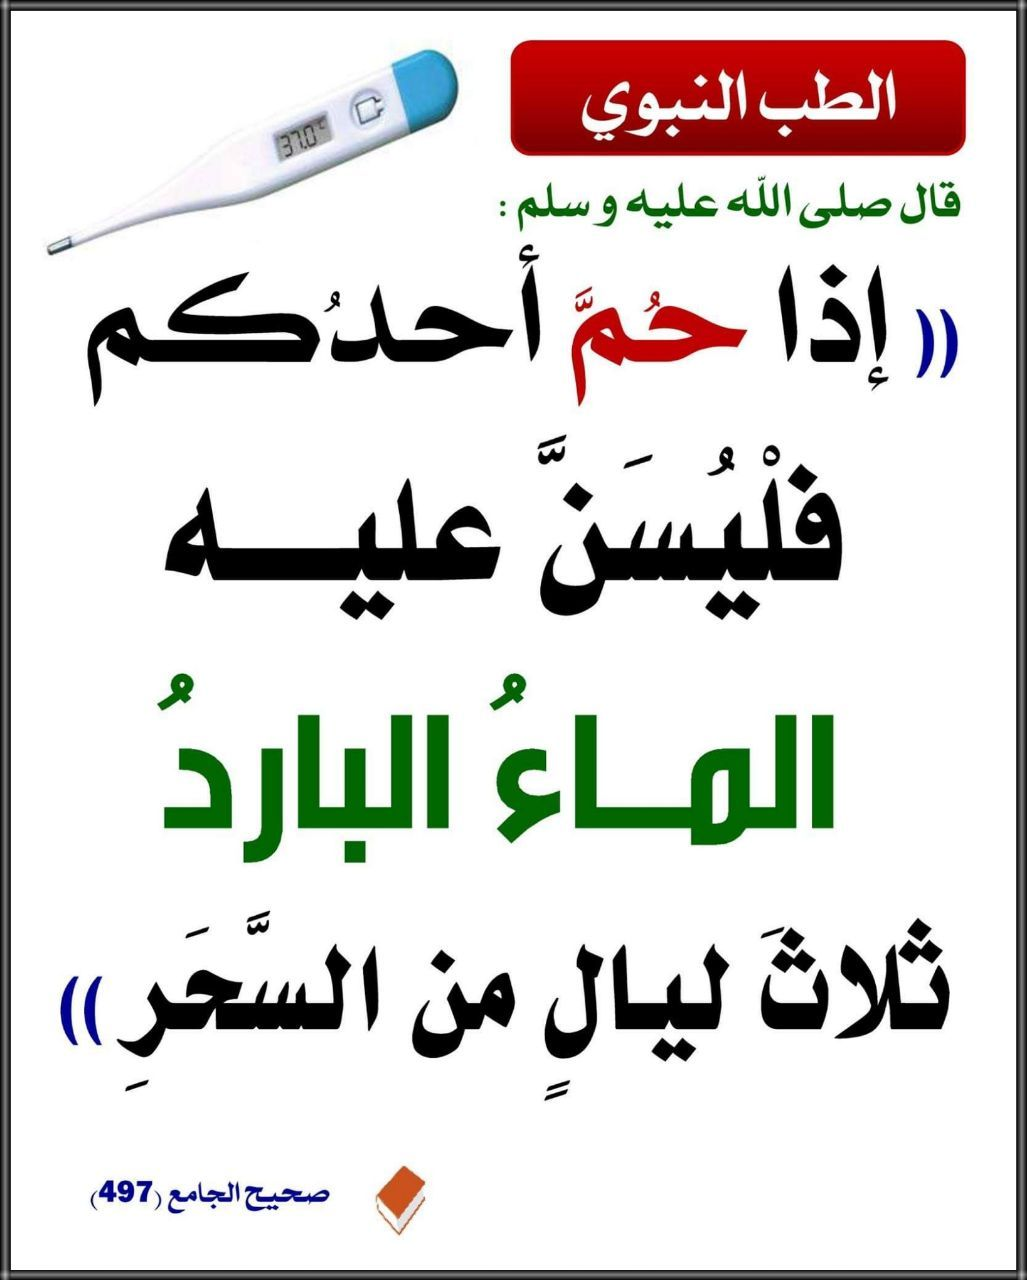 Pin By Jasmin On أحاديث نبوية Islamic Phrases Islam Facts Life Lesson Quotes